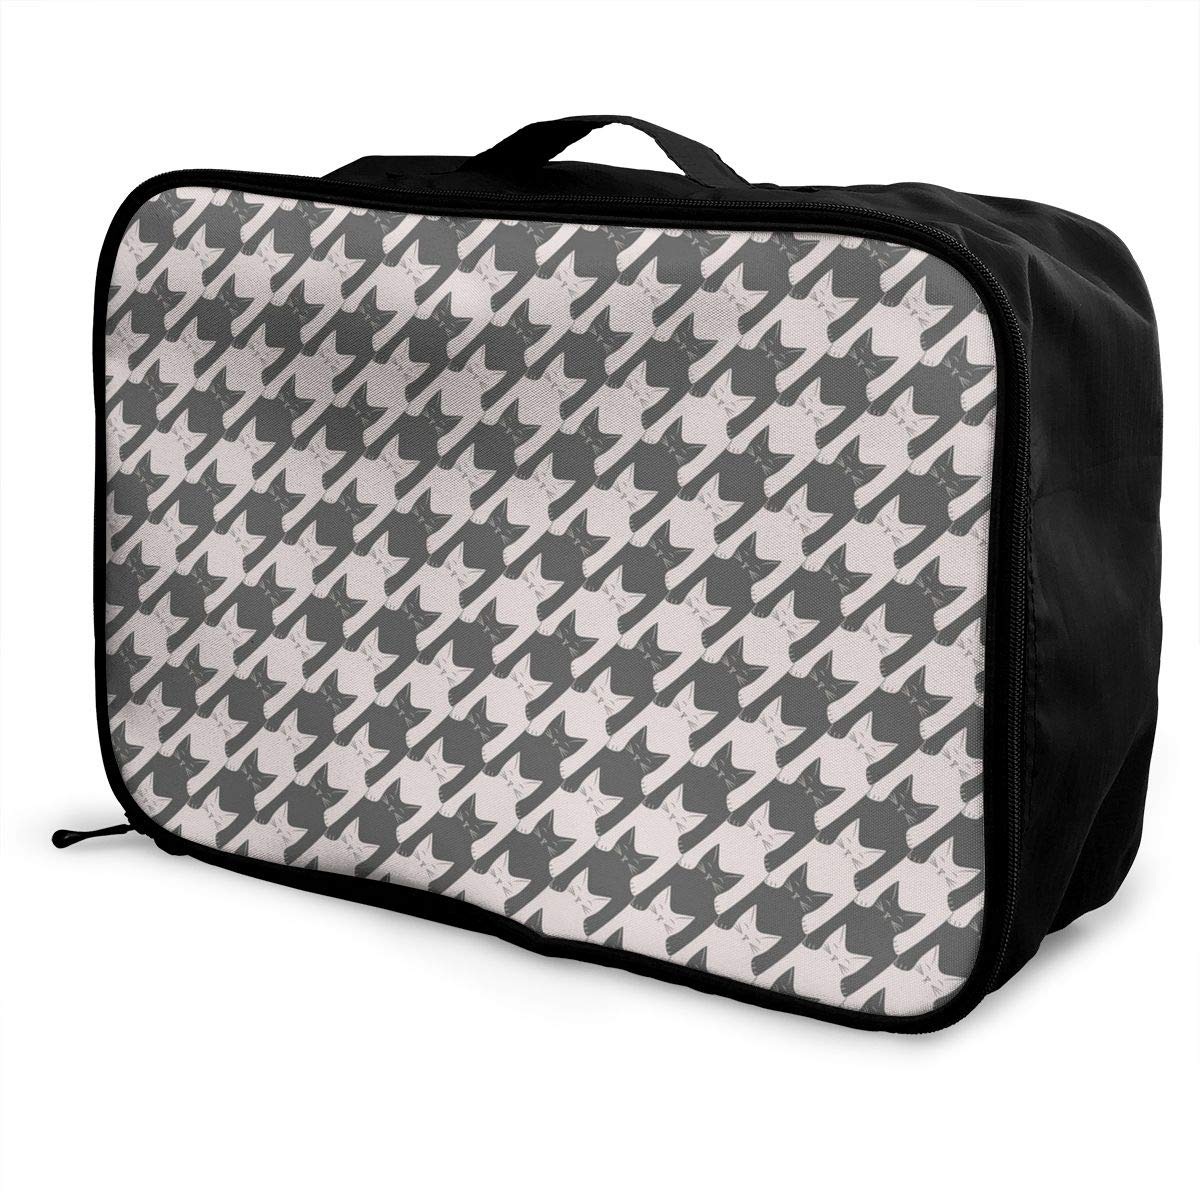 Cat Houndstooth Travel Duffel Bag Waterproof Fashion Lightweight Large Capacity Portable Luggage Bag